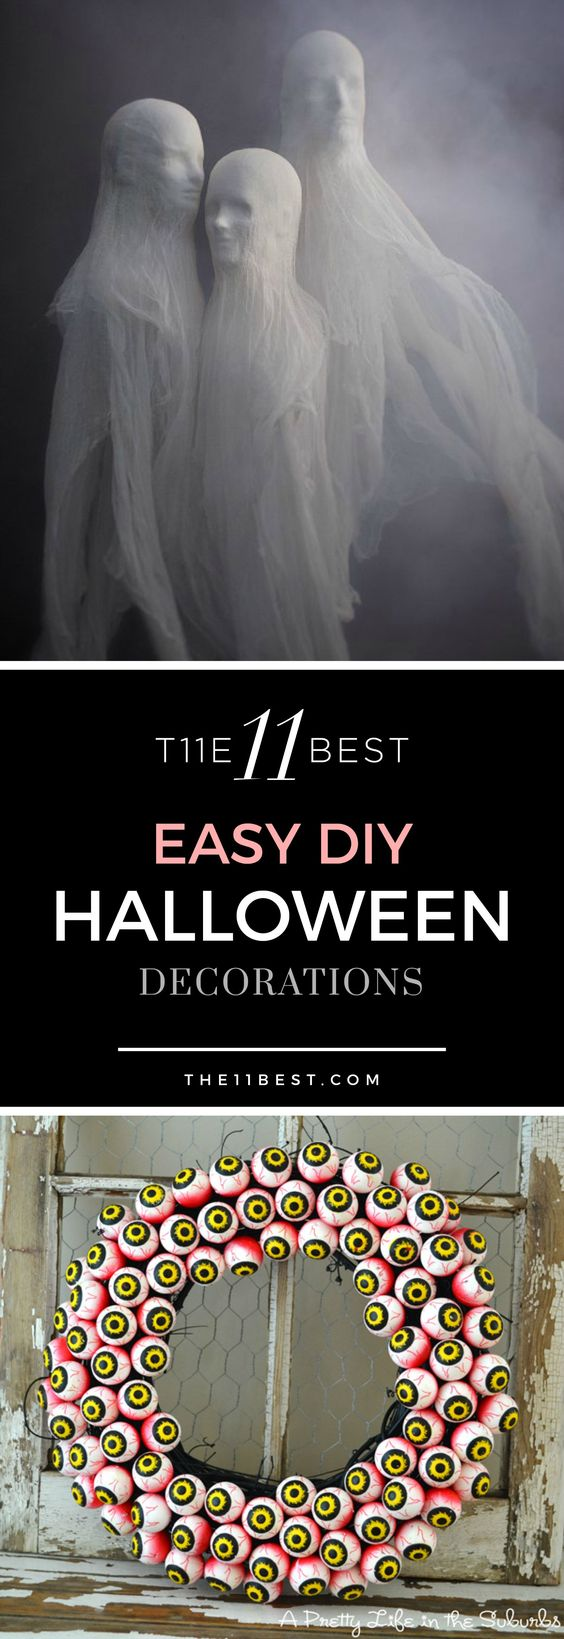 The 11 Best EASY DIY Halloween Decorations: